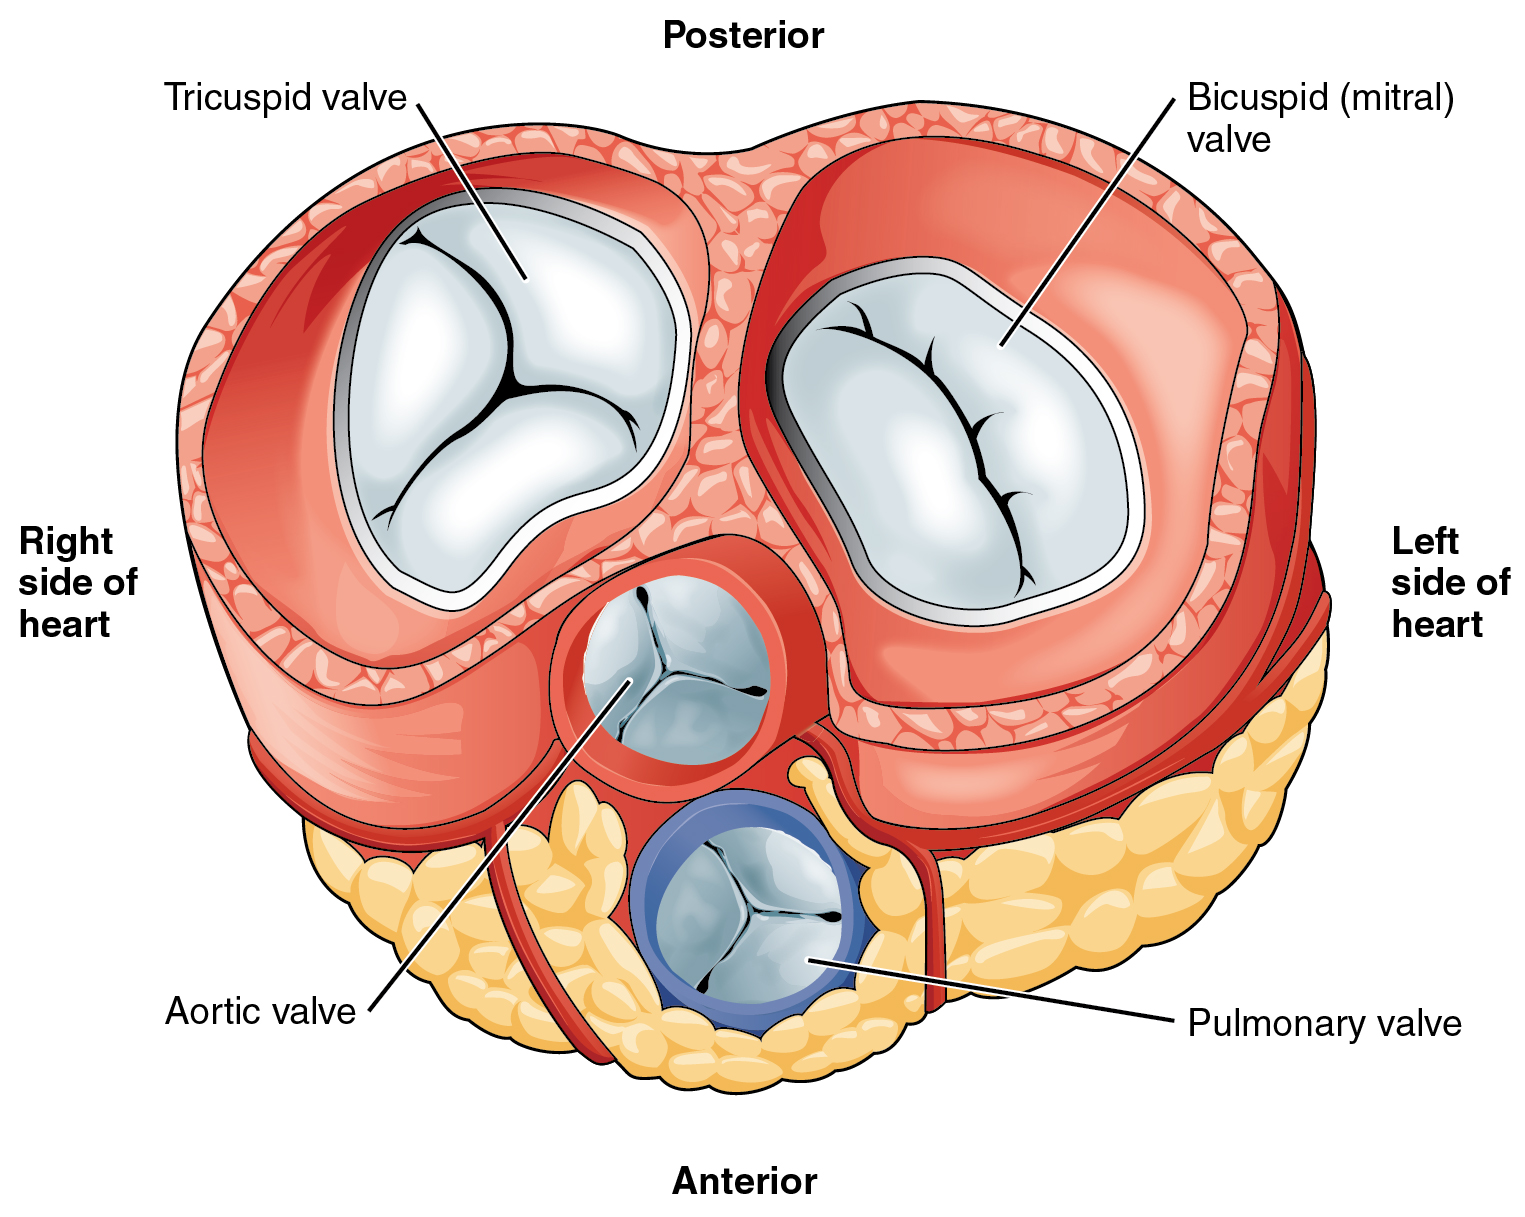 This diagram shows the anterior view of the heart with the different heart valves labeled.